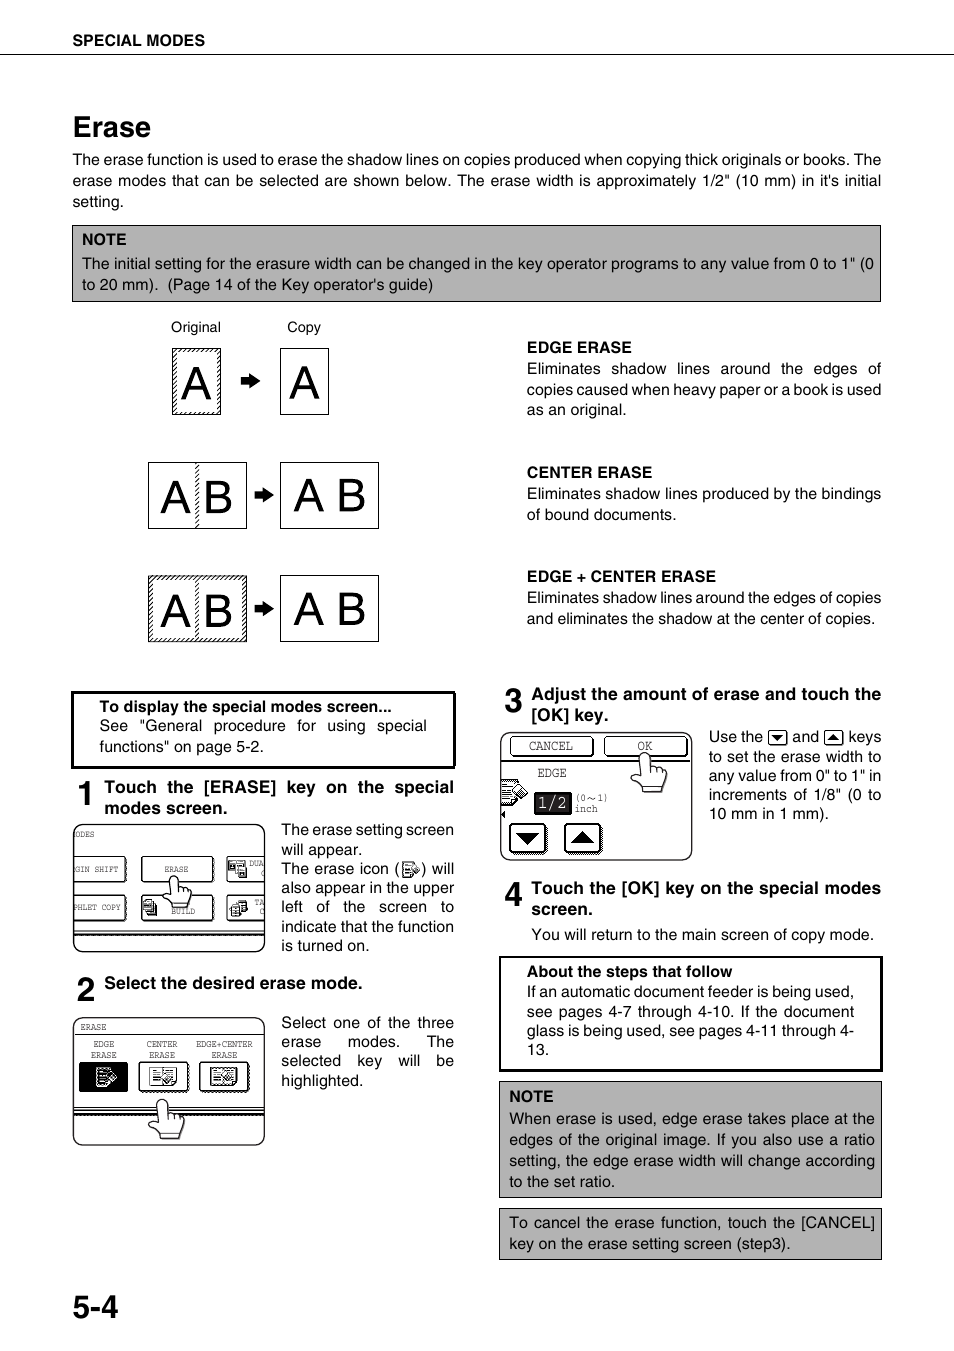 Erase | Sharp AR-M700N User Manual | Page 100 / 172